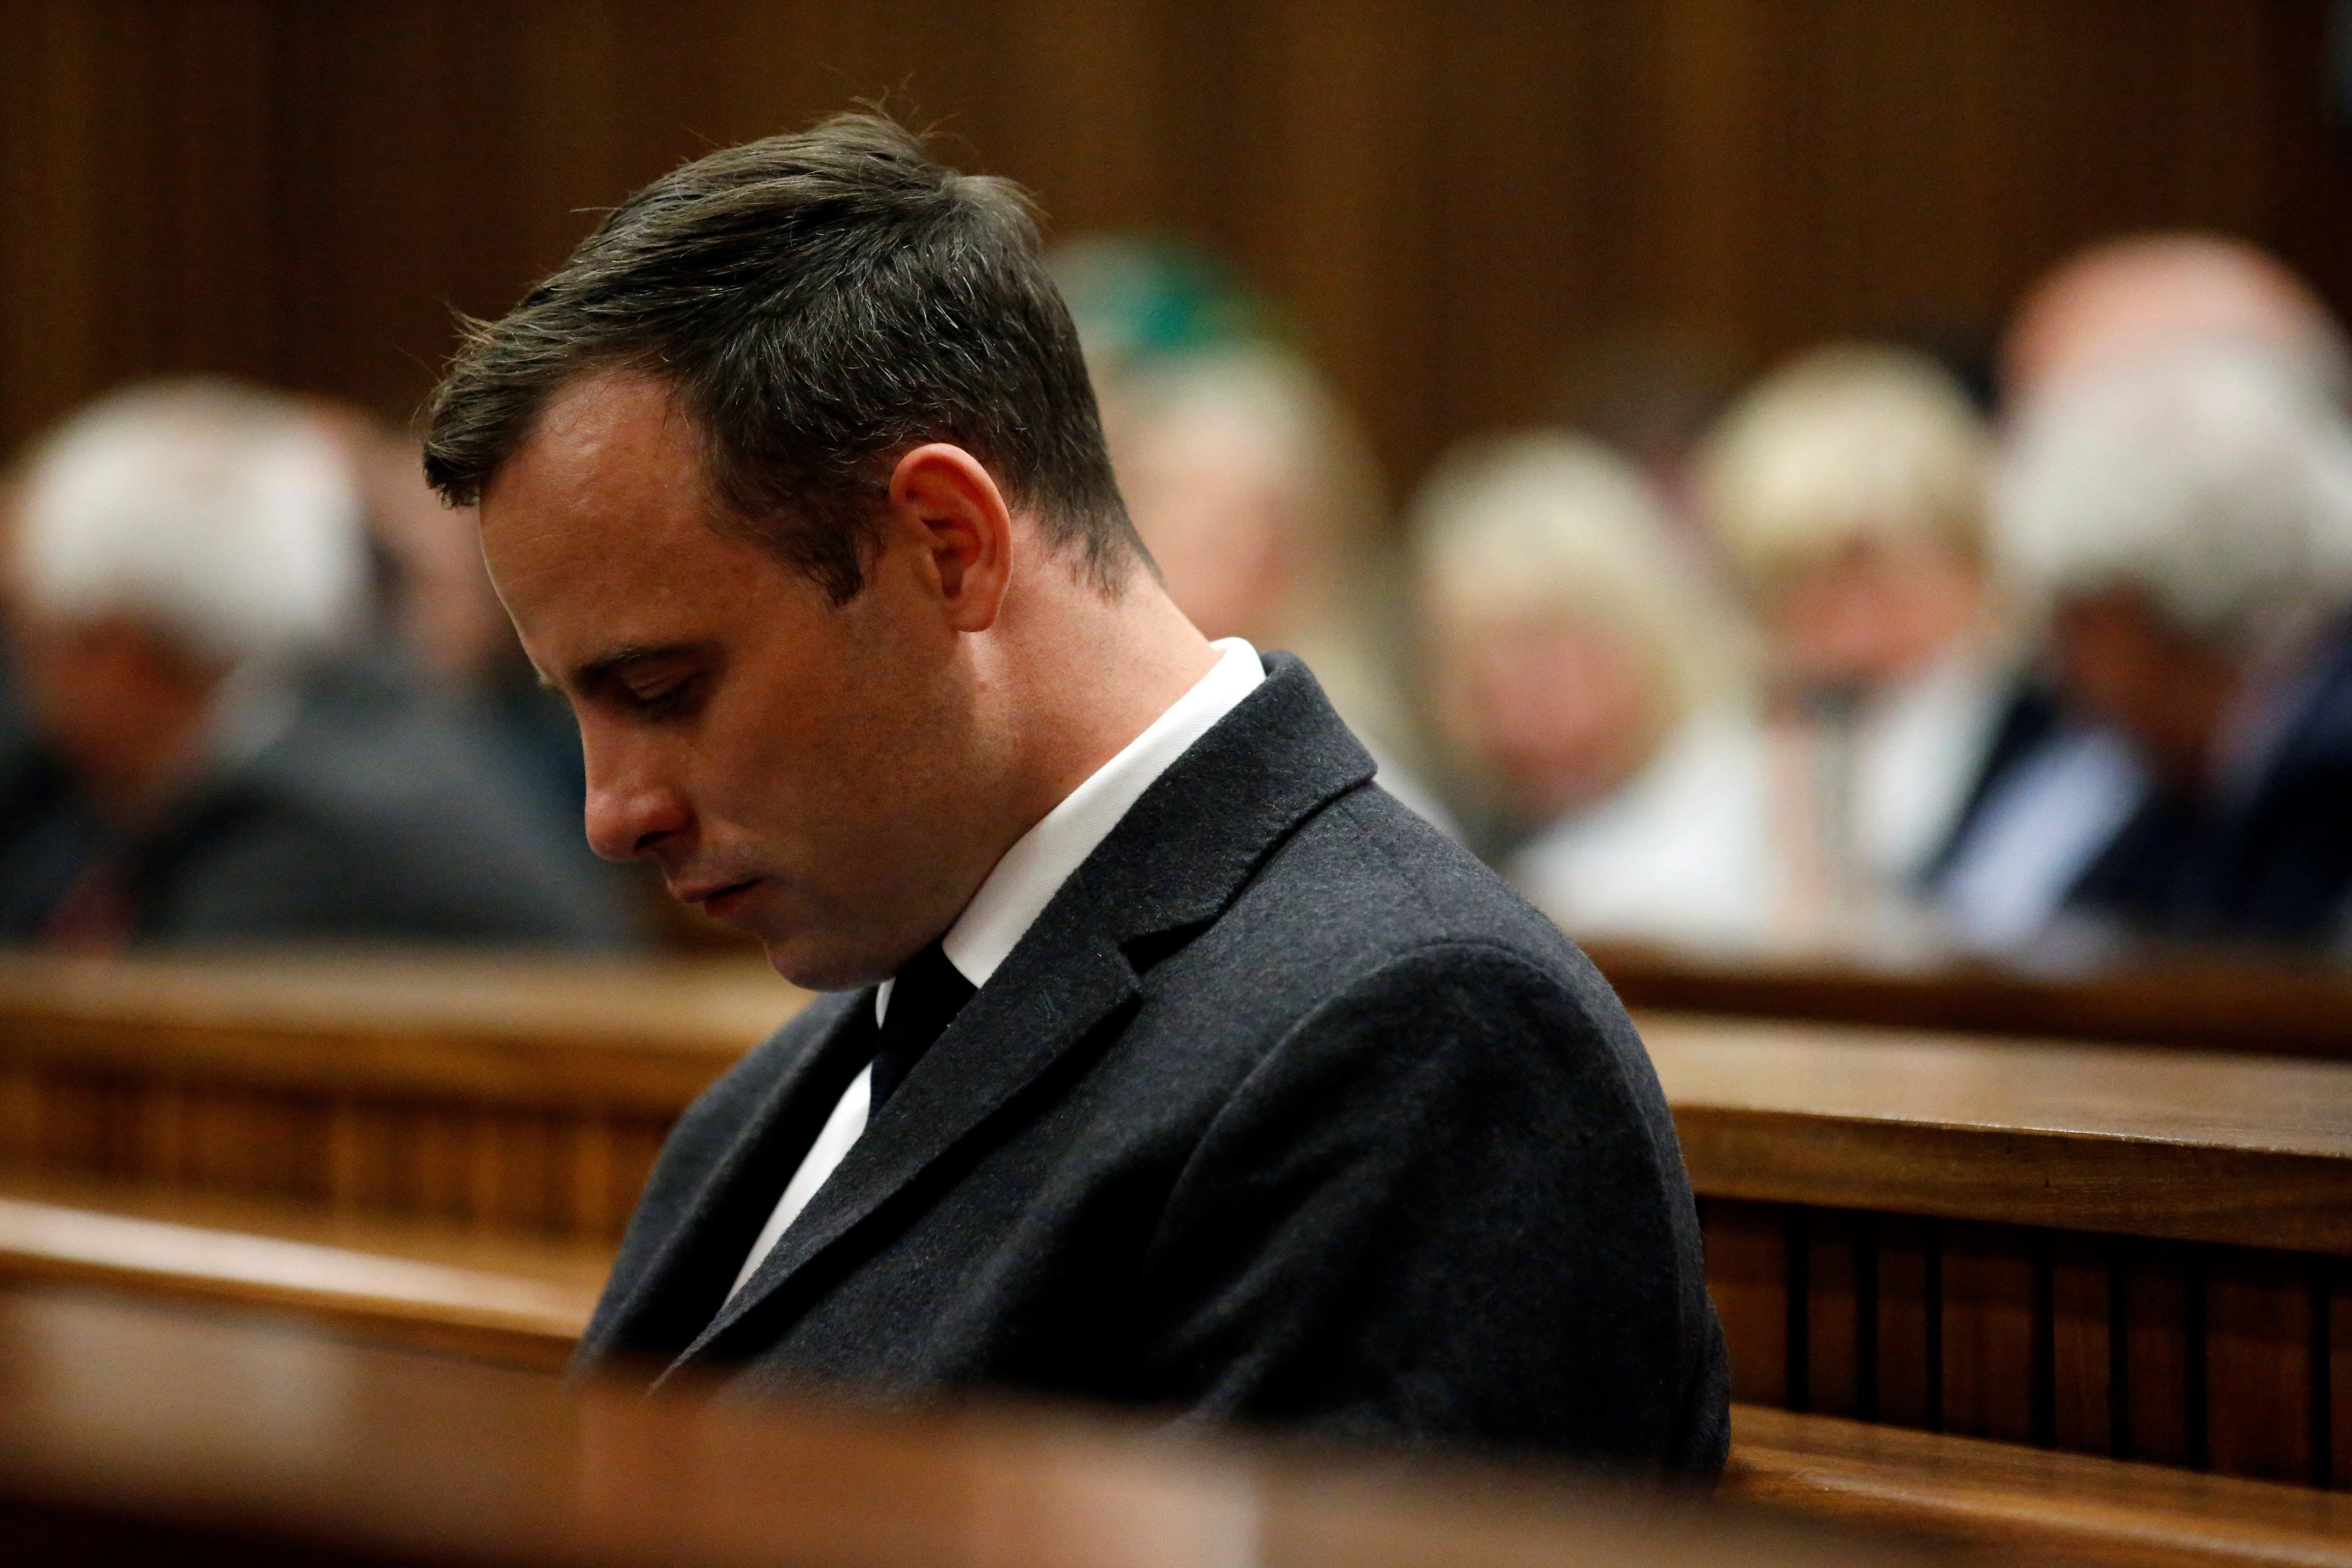 Marco Longari  Anadolu Agency via Getty Images Oscar Pistorius awaits summary judgment in his trial